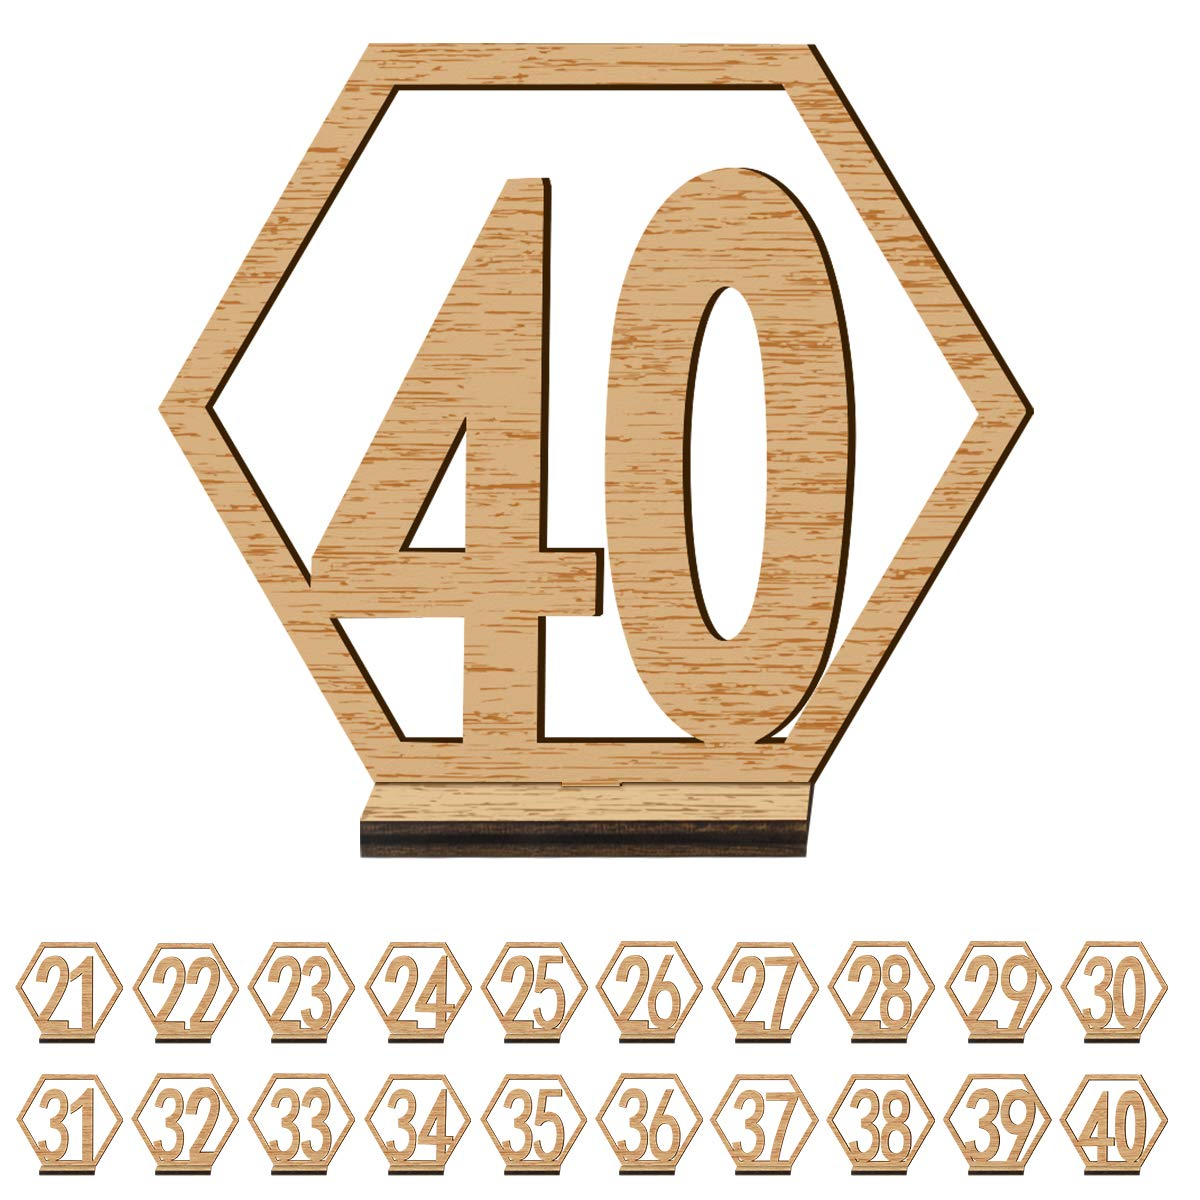 ElekFX Table Numbers 20 Pack 1-20 Wedding Wooden Desk Number Cards with Base Party Card Double Sided Design Table Holder for Wedding Reception and Decoration (M)